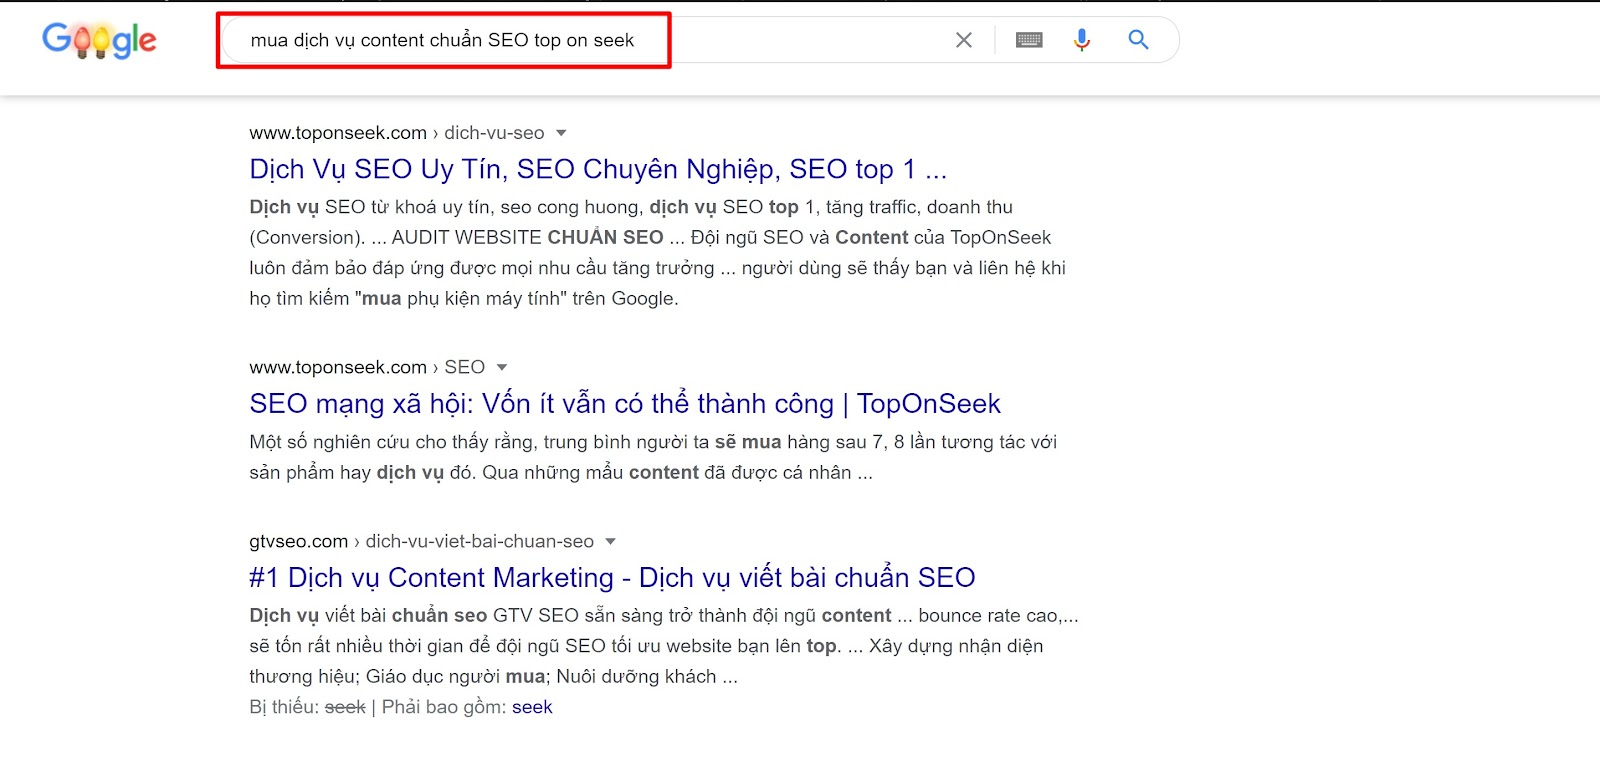 Truy vấn giao dịch